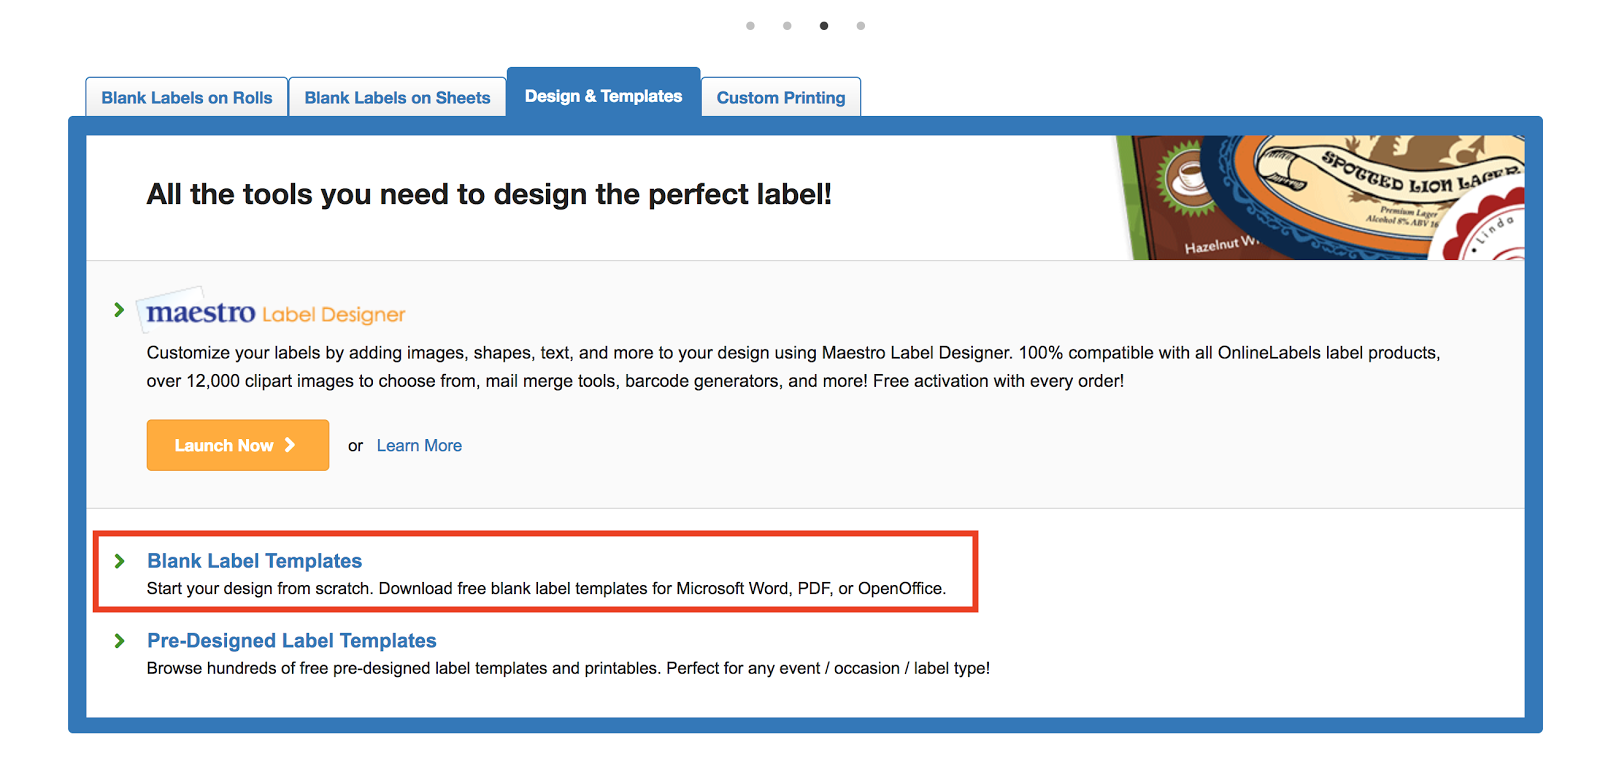 """On Online Label Sticker Paper), Click The Design & Template Tab Near  The Middle Of The Online Labels Main Website, Then Pick """"blank Label  Templates""""."""